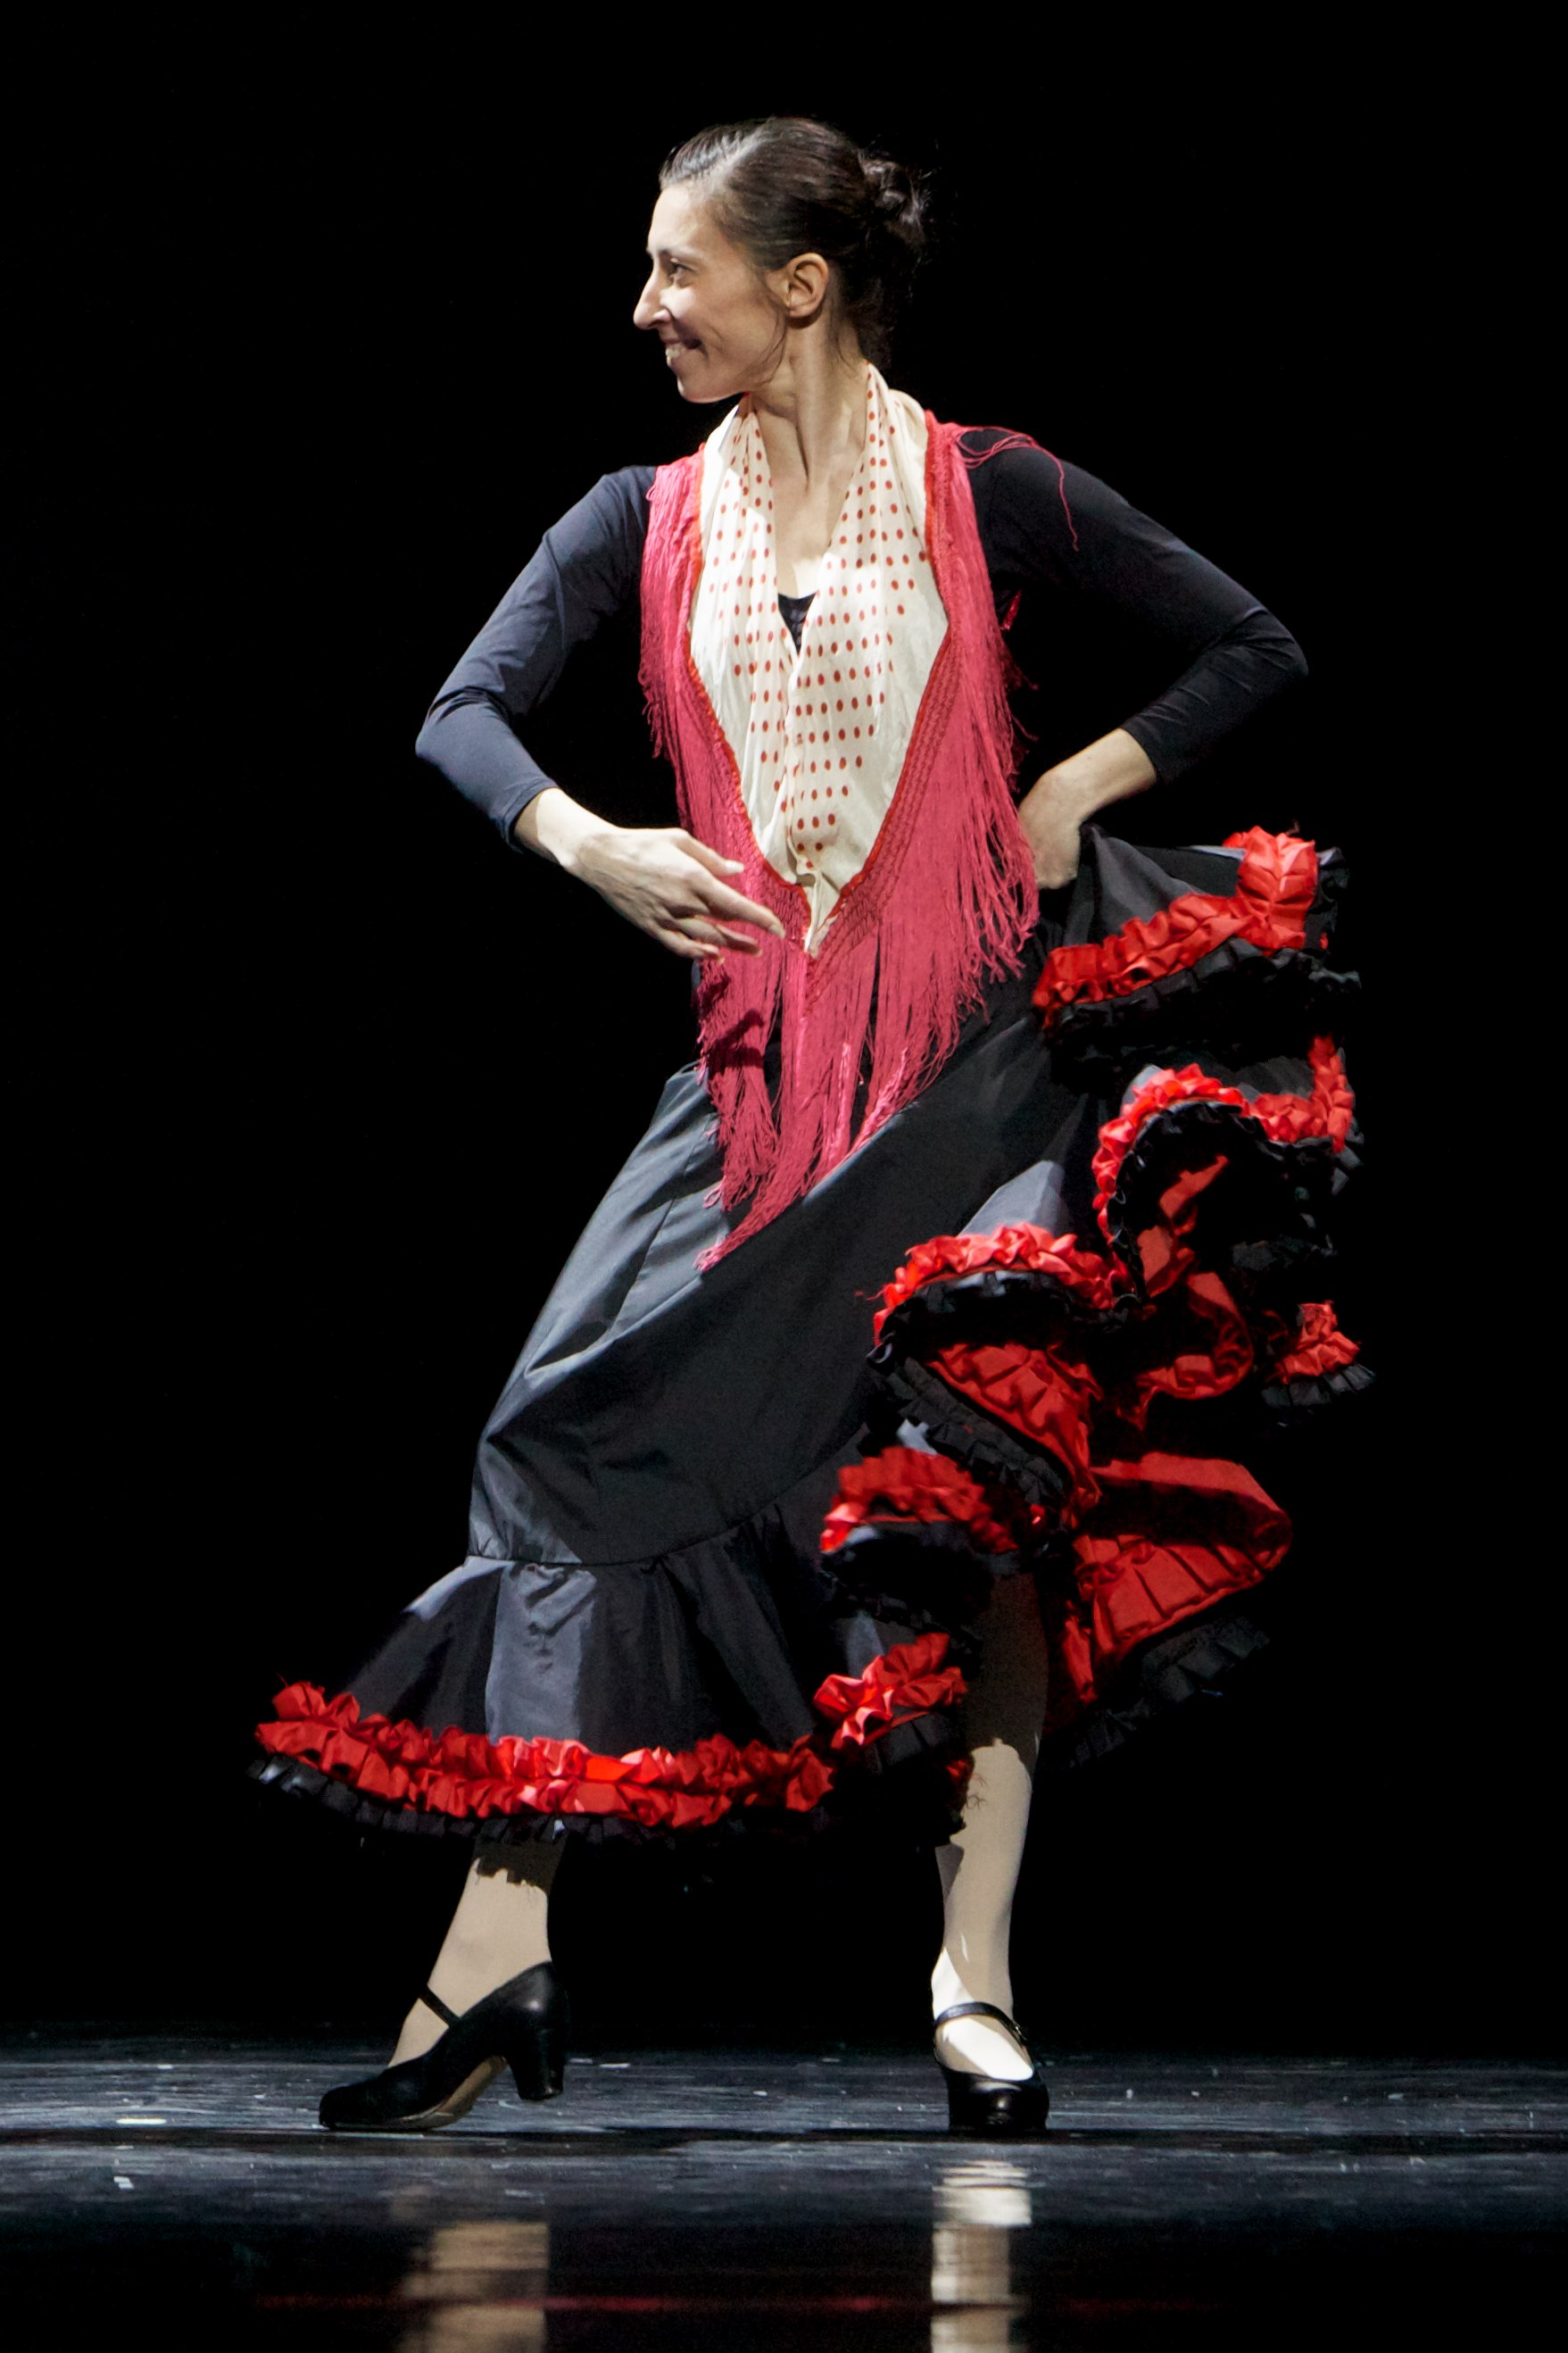 ballet dancer in flamenco costume